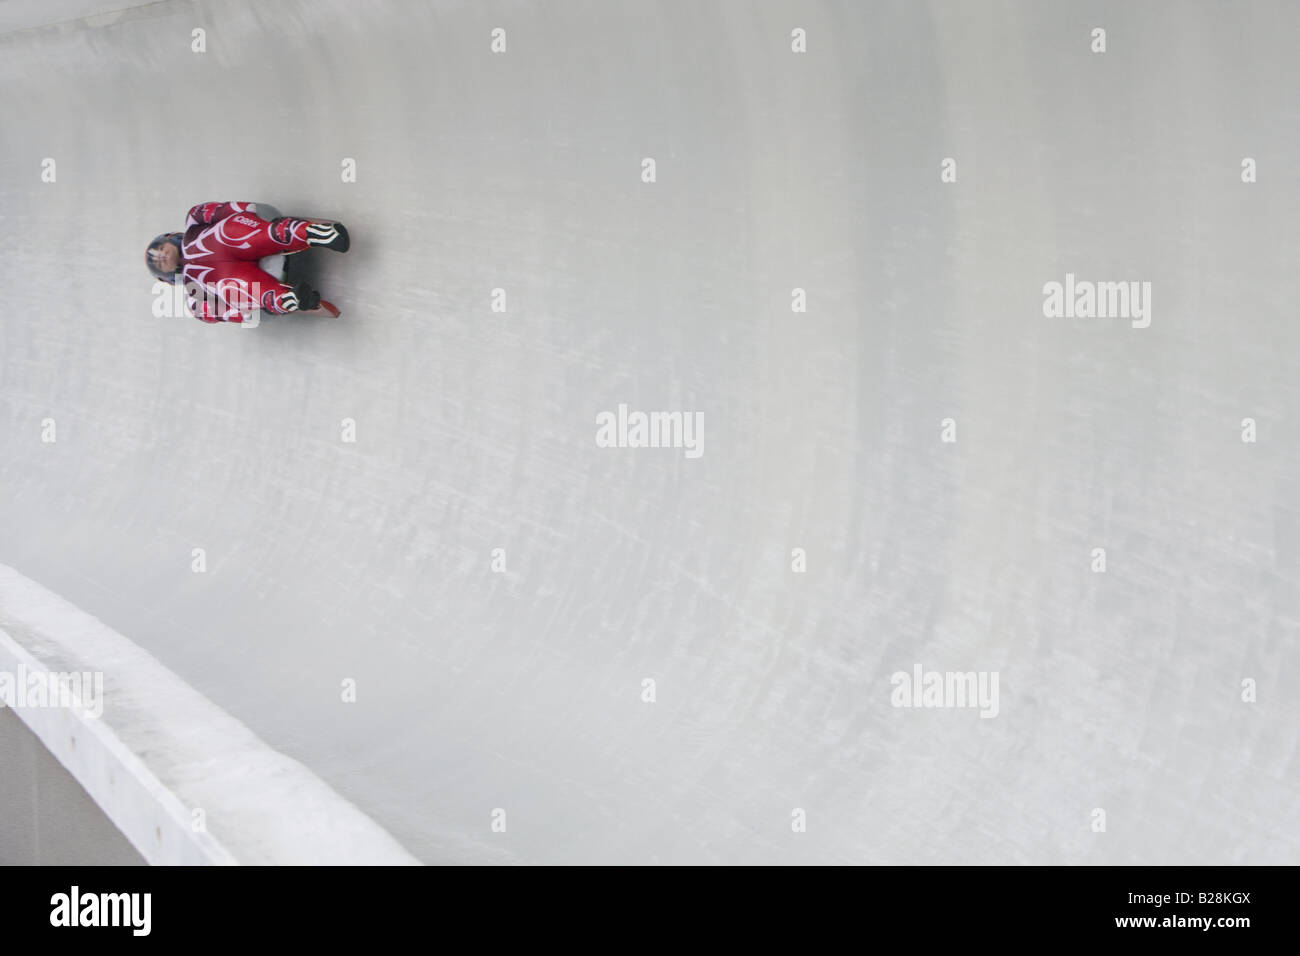 Louge at the Whistler Sleding Centre British Columbia Canada Stock Photo